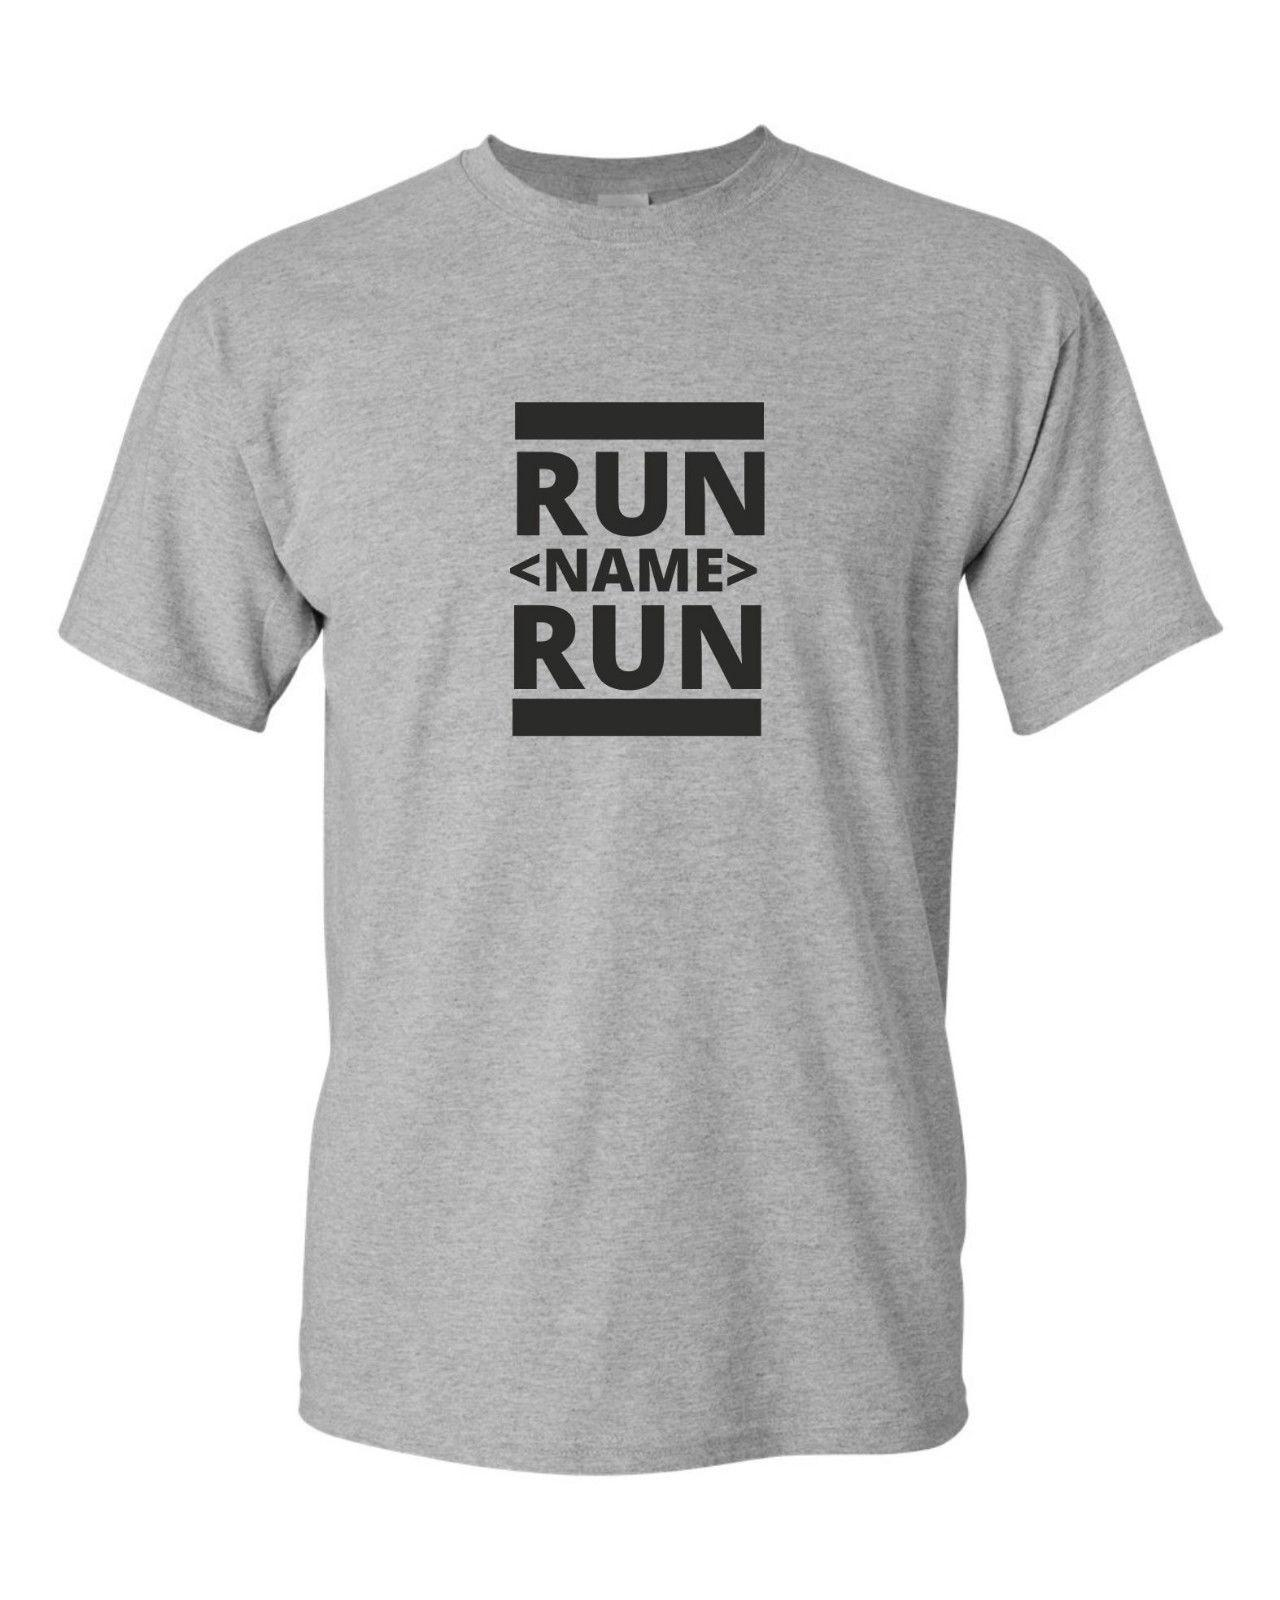 368e9e91ae77c RUN YOUR NAME RUN Funny Mens T Shirt Gift Idea Fun CUSTOM TEXT TSHIRT Funny  Unisex Casual Tee Gift Tee Shirt Shop Online One T Shirt A Day From  Elite direct ...